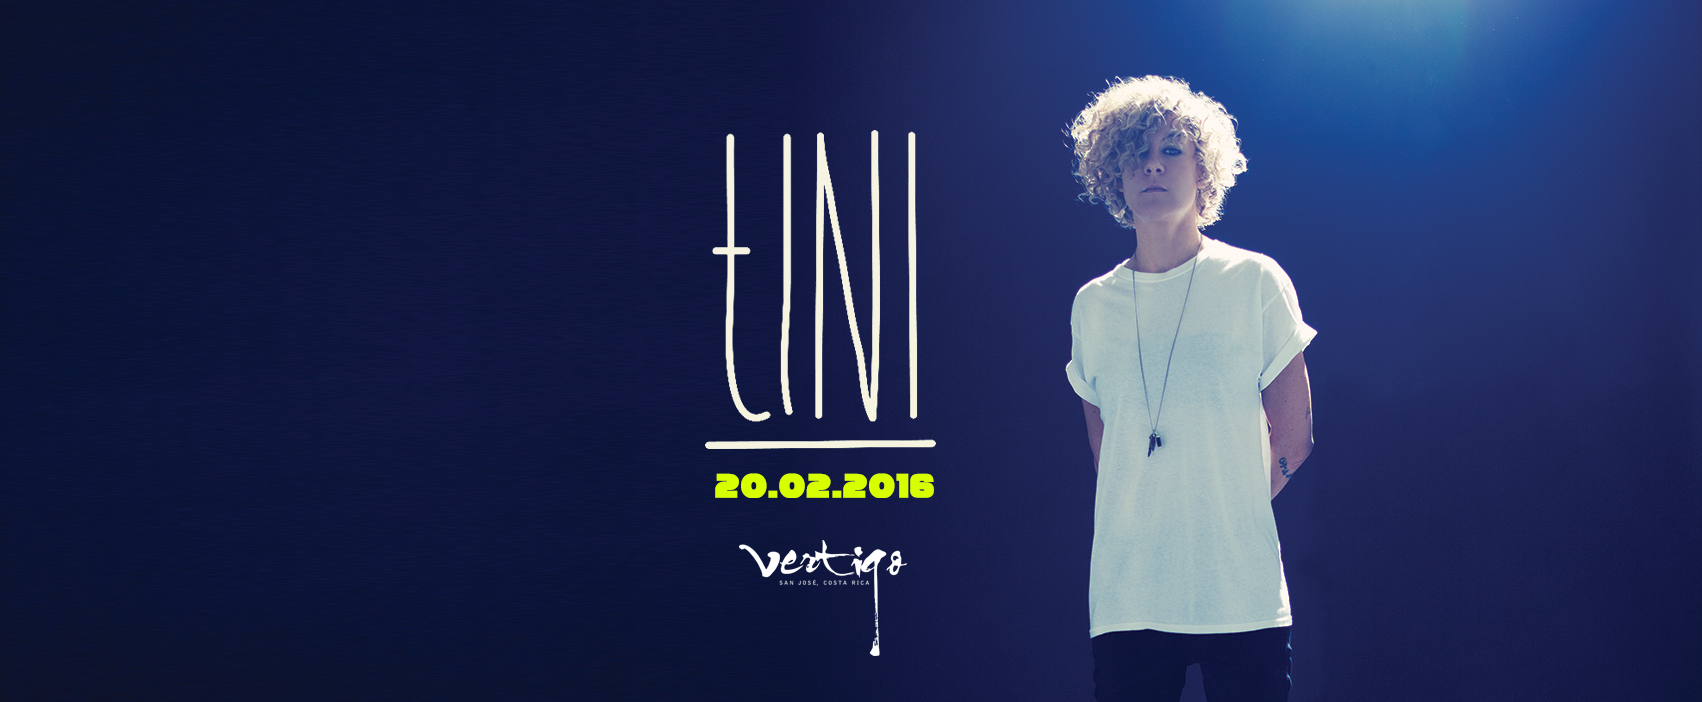 tini-cover-evento